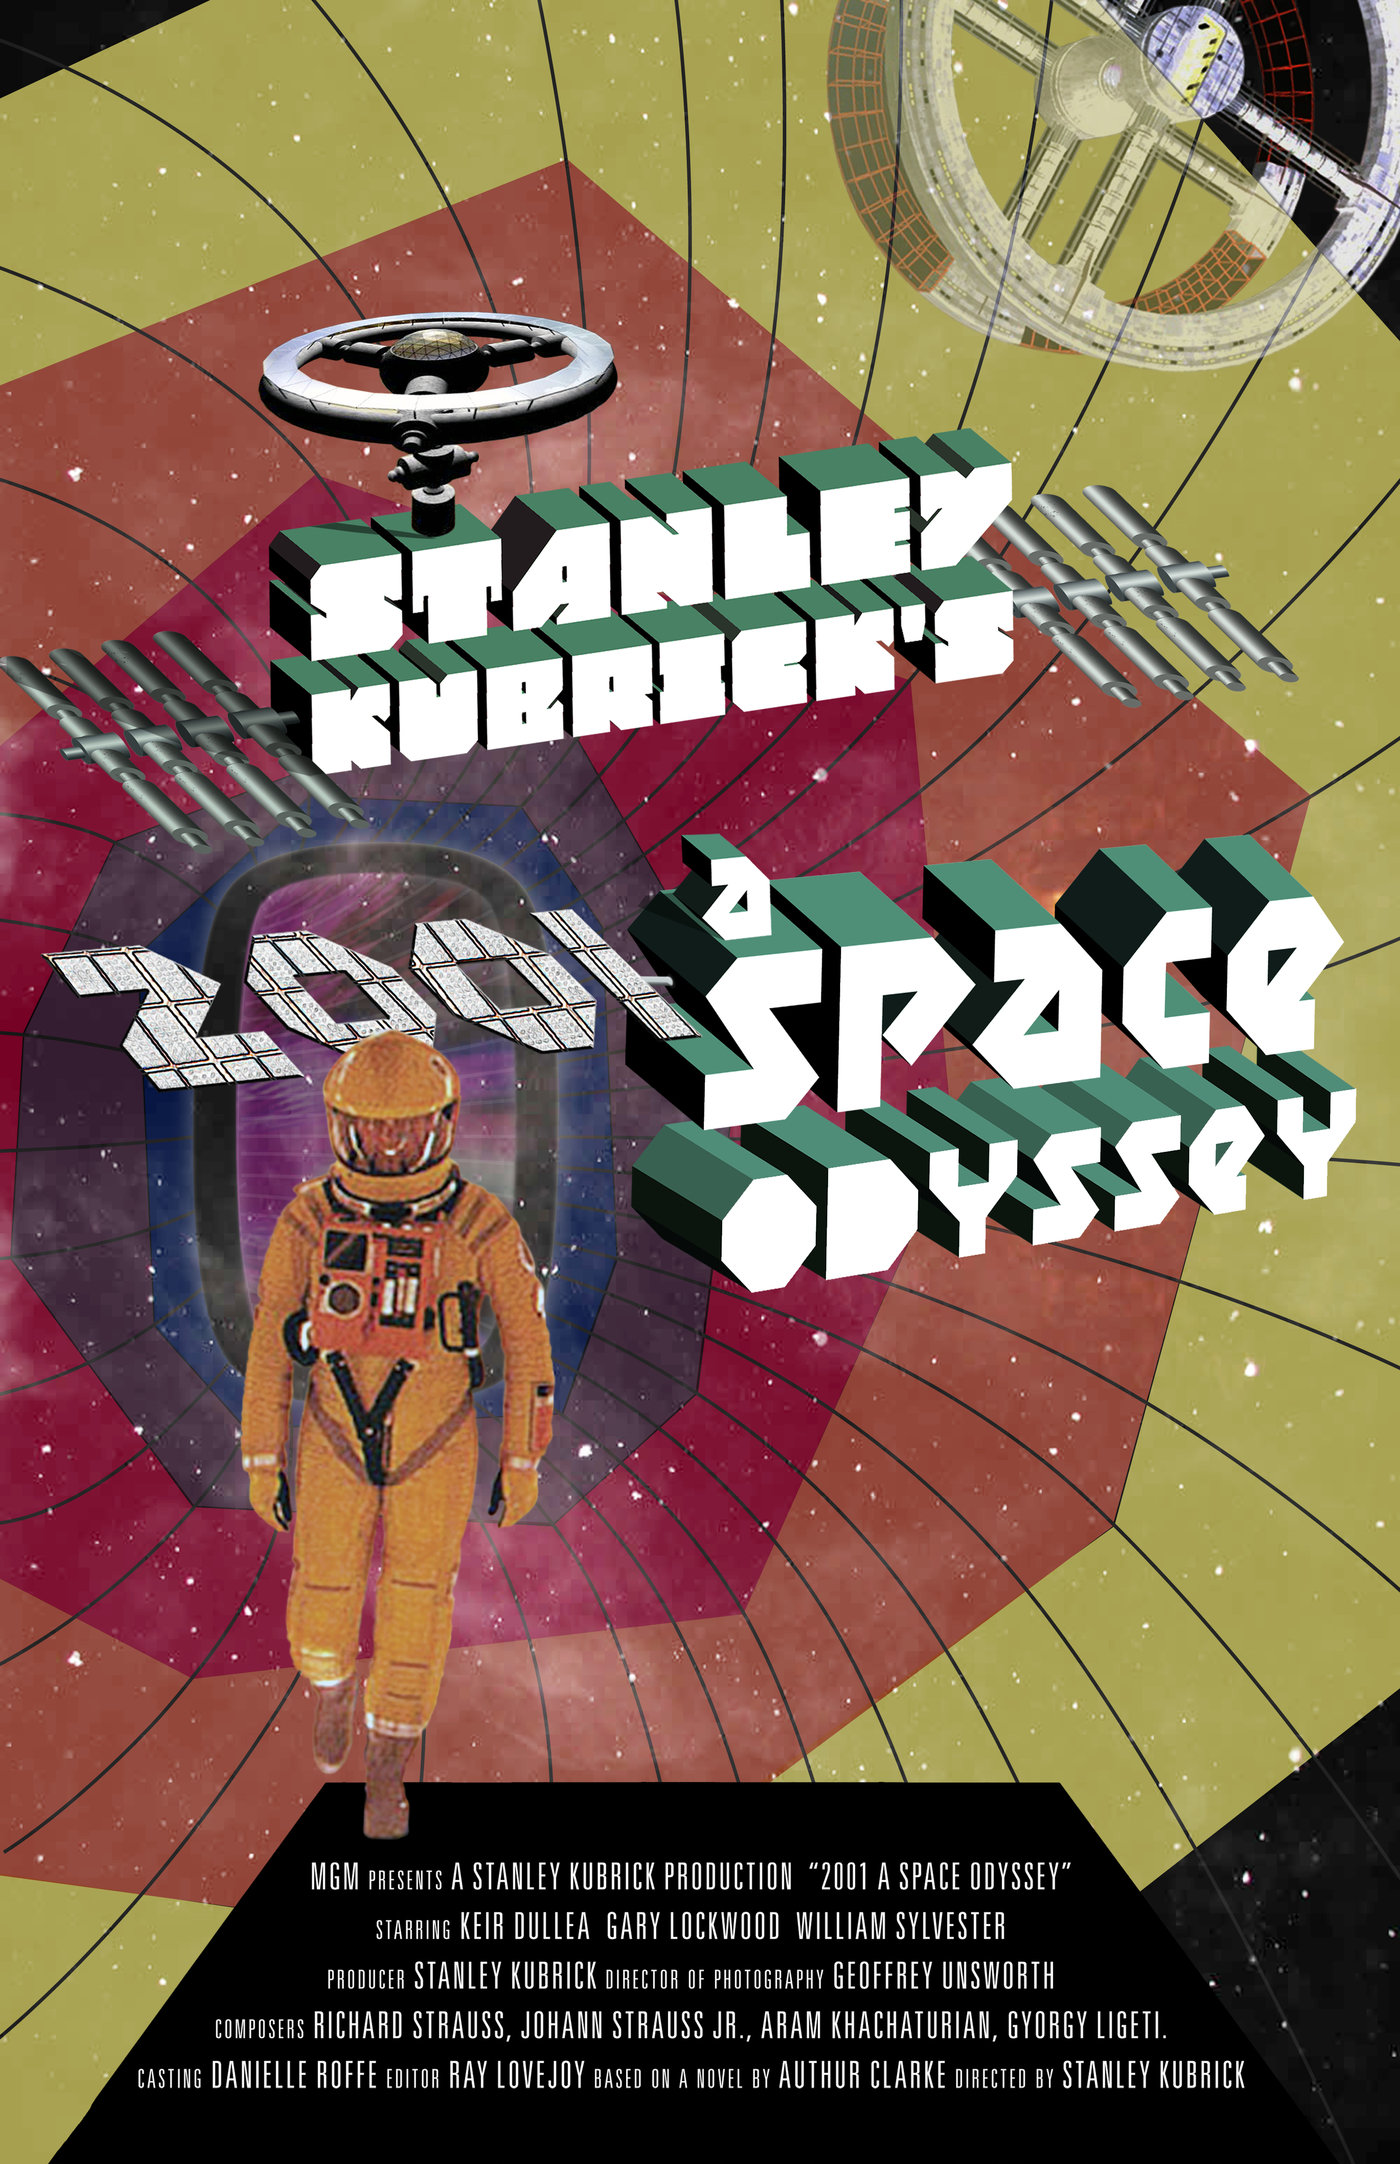 a review of 2001 a space odyssey It could be the greatest freak-out of all time stanley kubrick's masterful 2001 is a smorgasbord of sight and sound, and its special effects are indistinguishable from reality, despite an age of over 30 years.